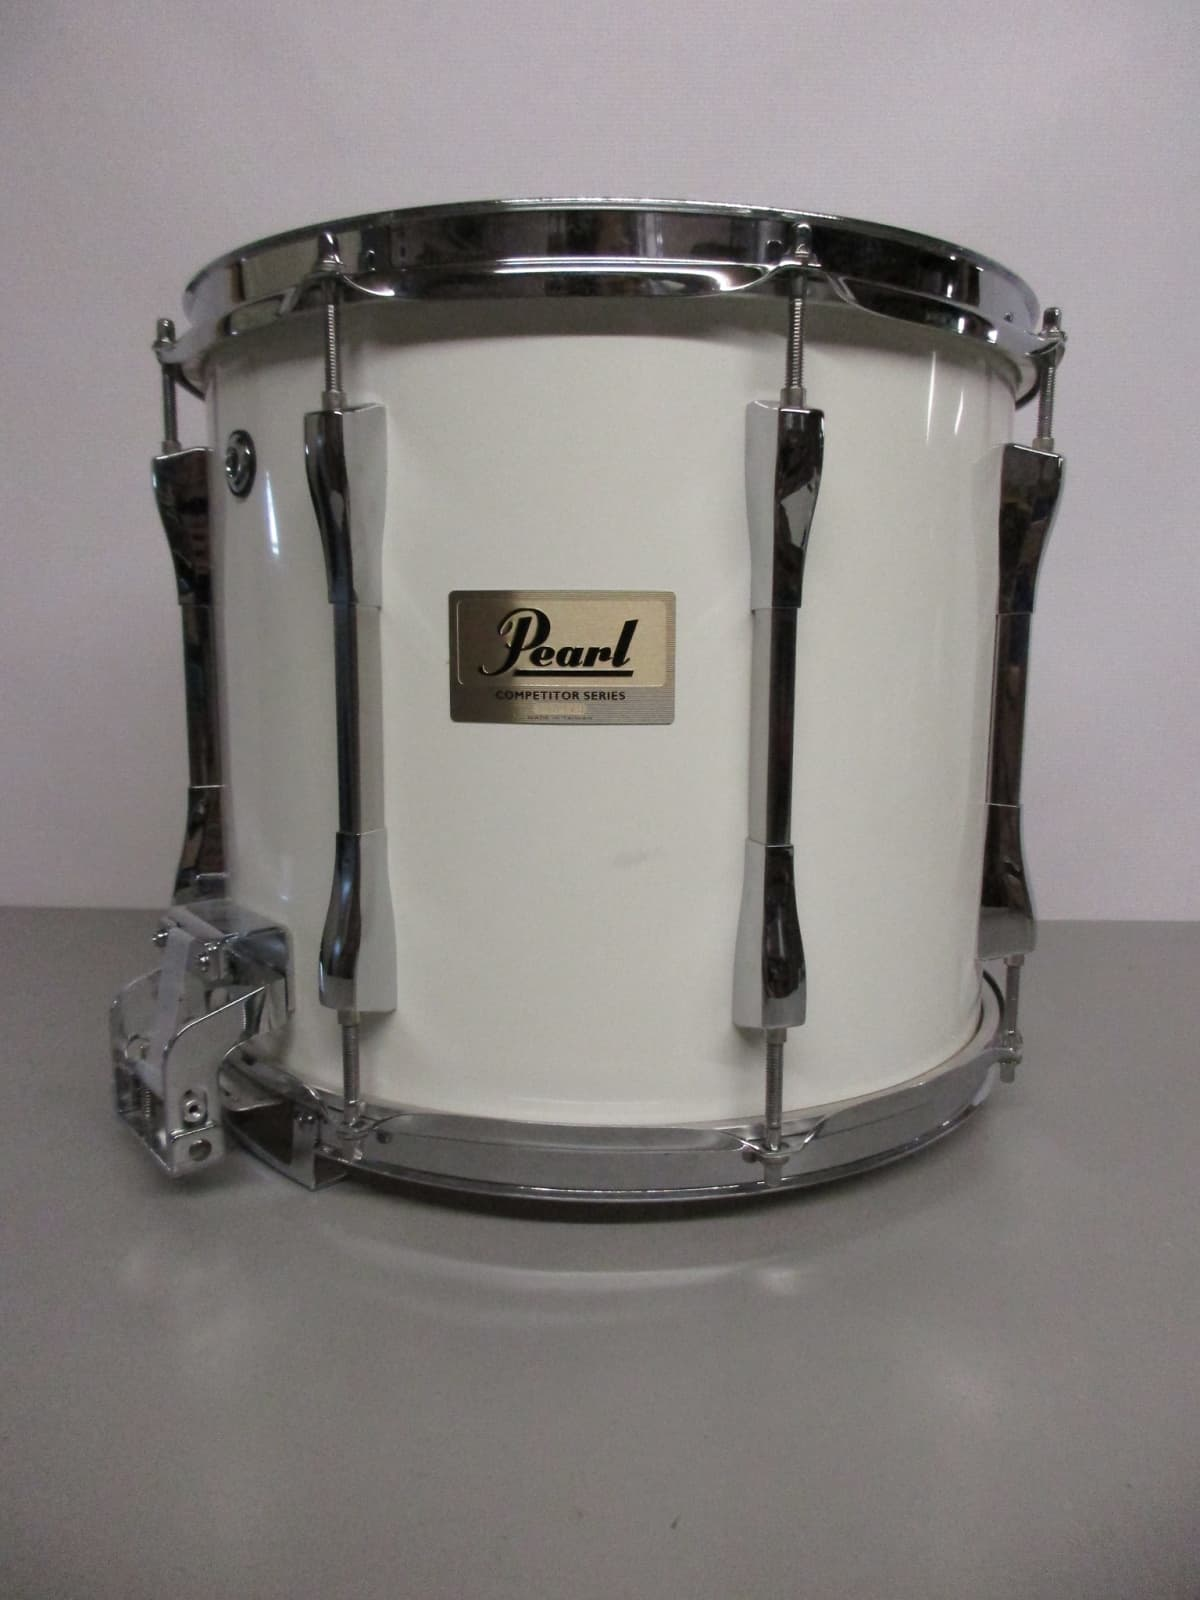 pearl competitor series 13x11 marching snare reverb. Black Bedroom Furniture Sets. Home Design Ideas